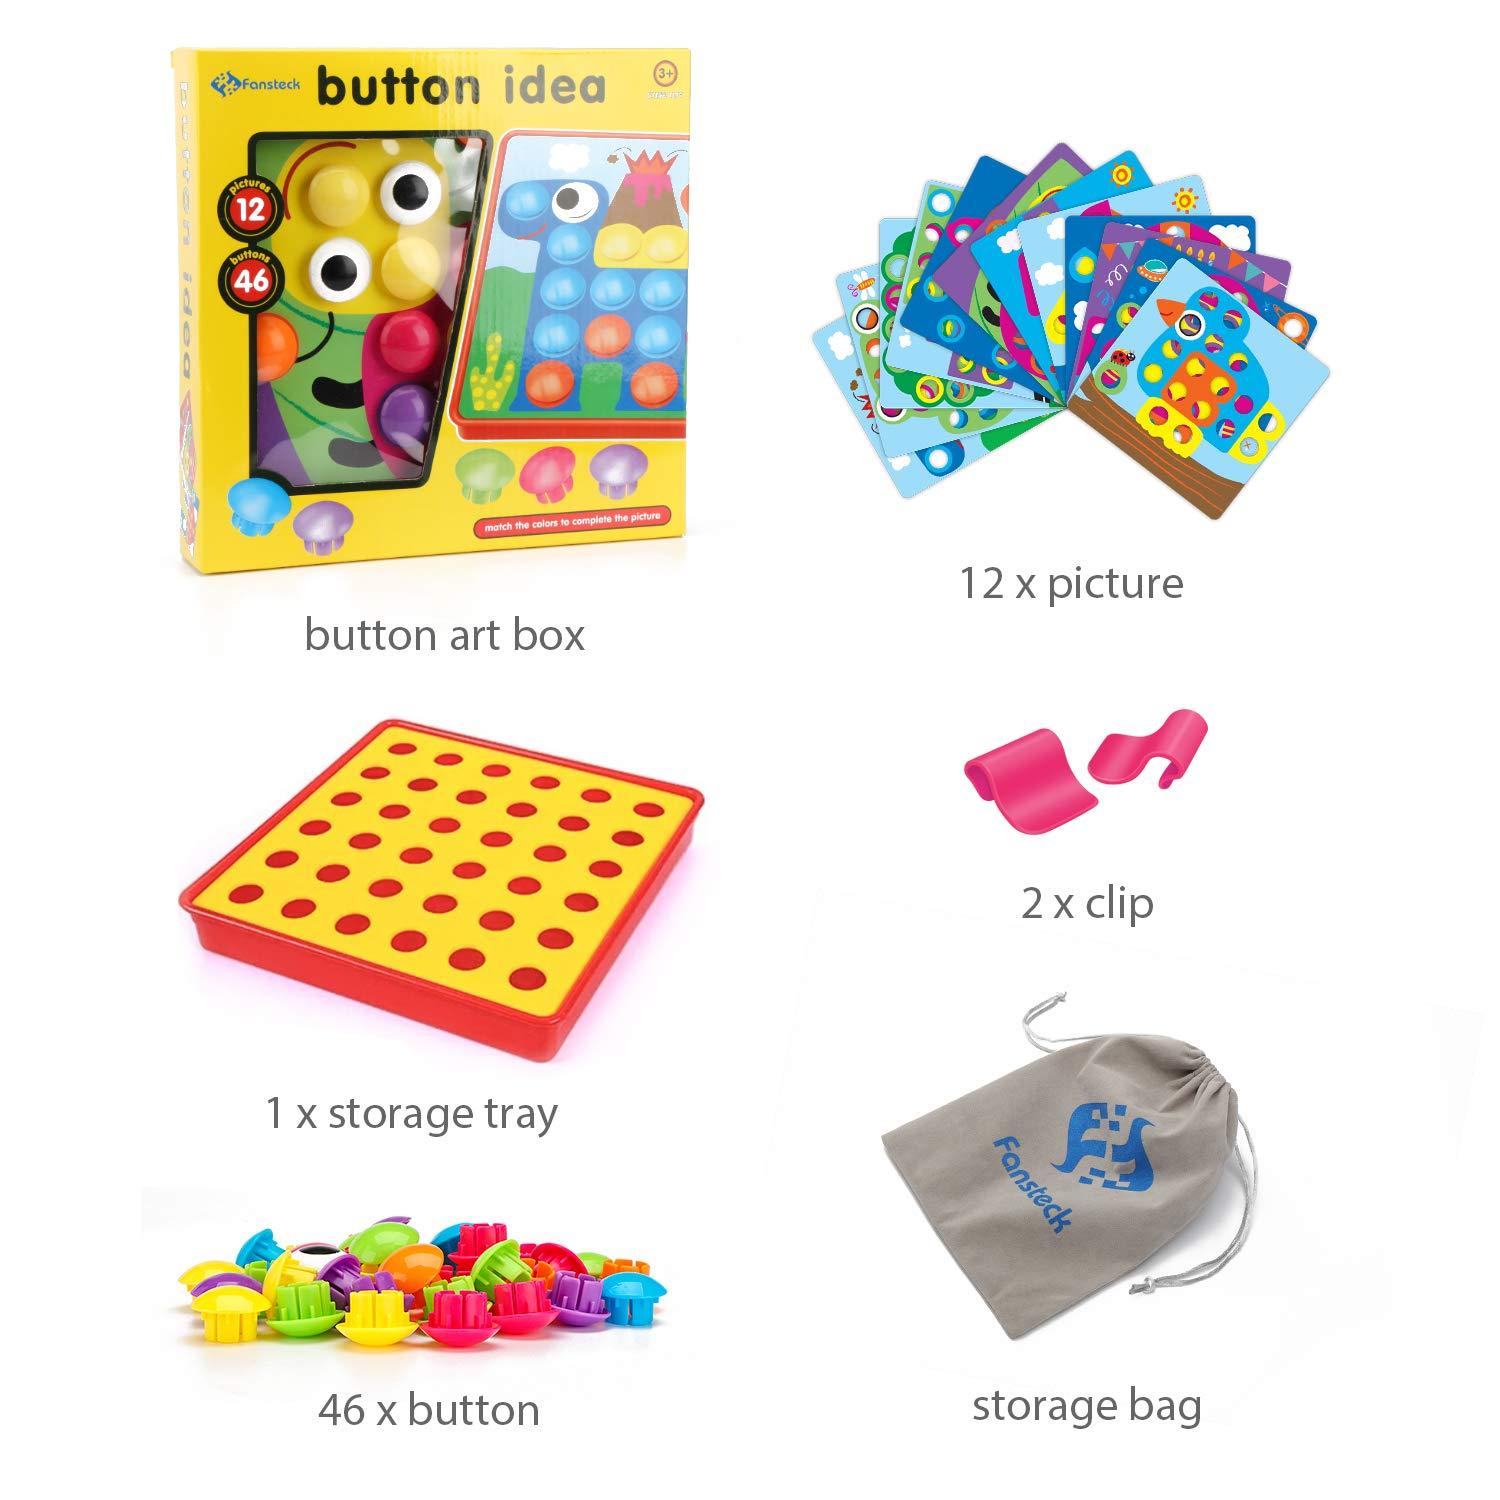 Safe Nontoxic ABS Plastic Premium Material Color Matching Early Learning Educational Mosaic Pegboard Fansteck Button Art Toy for Toddlers with a Bag Easy to Storag 12 Pictures and 46 Buttons